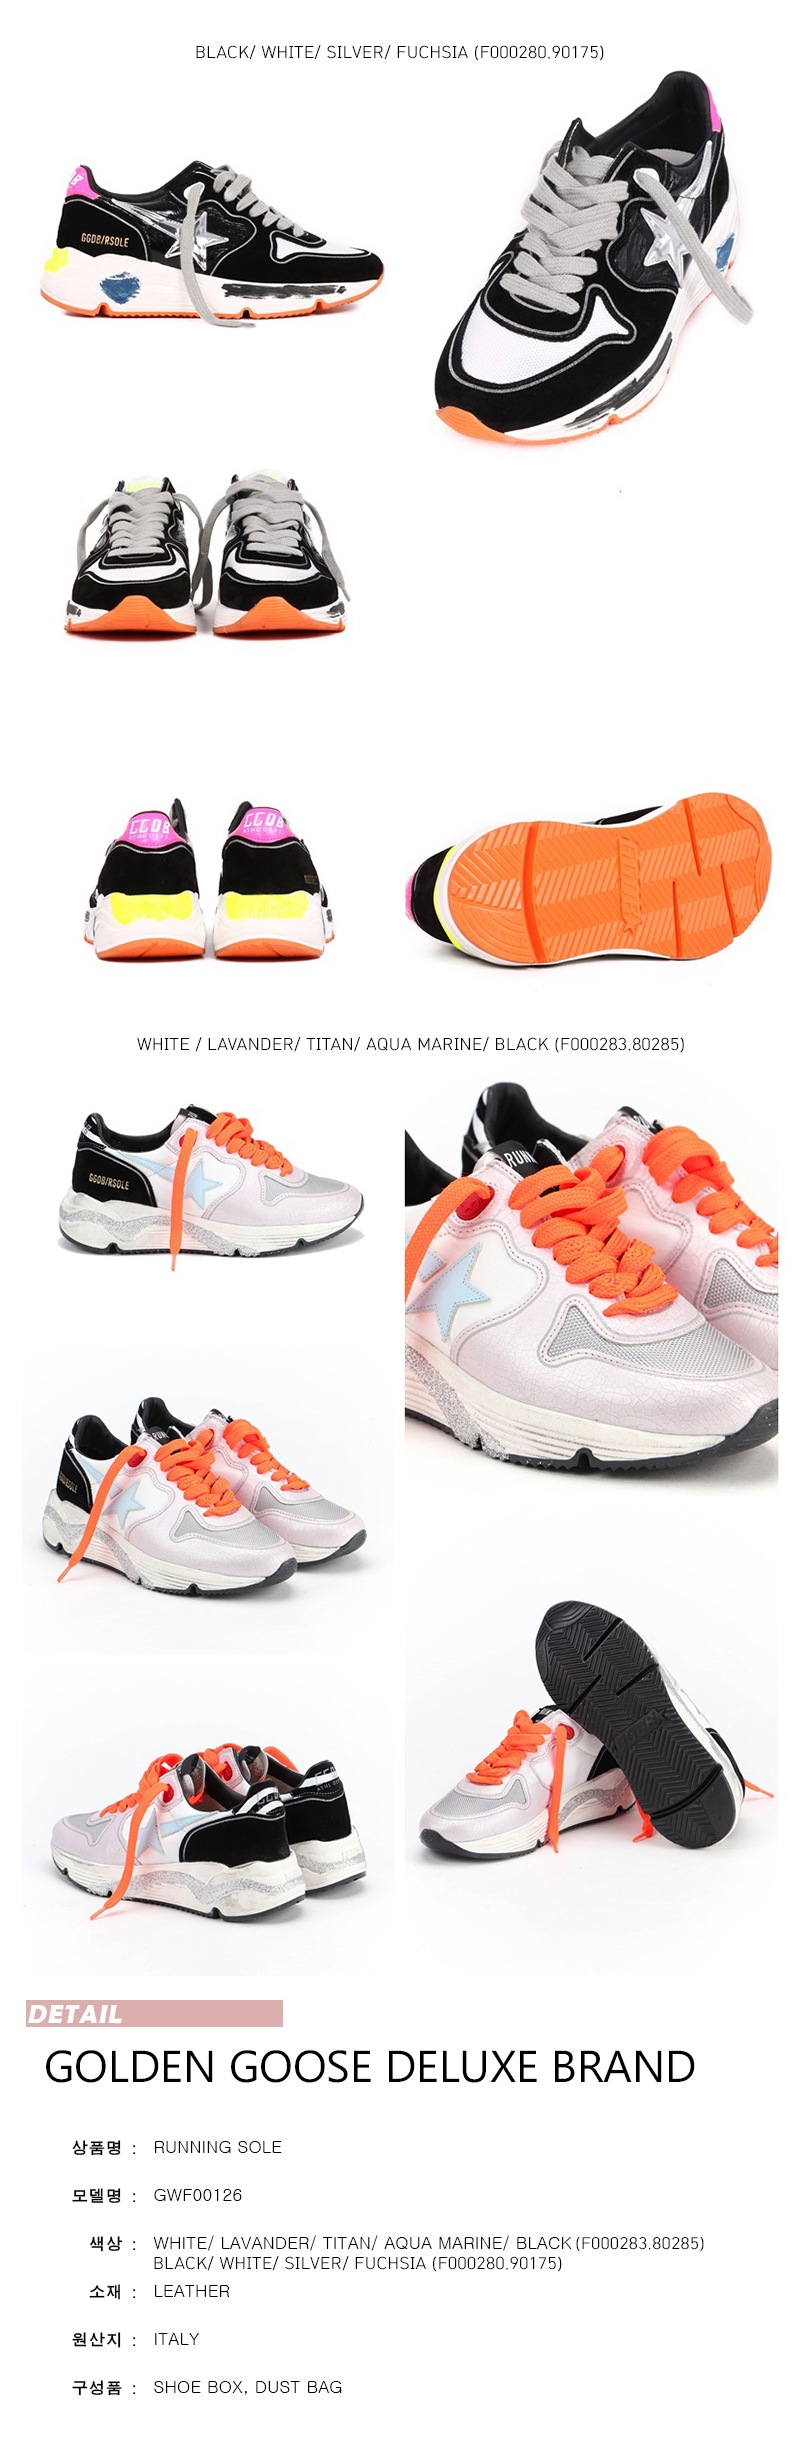 RUNNING SOLE 2COLOR 2.jpg